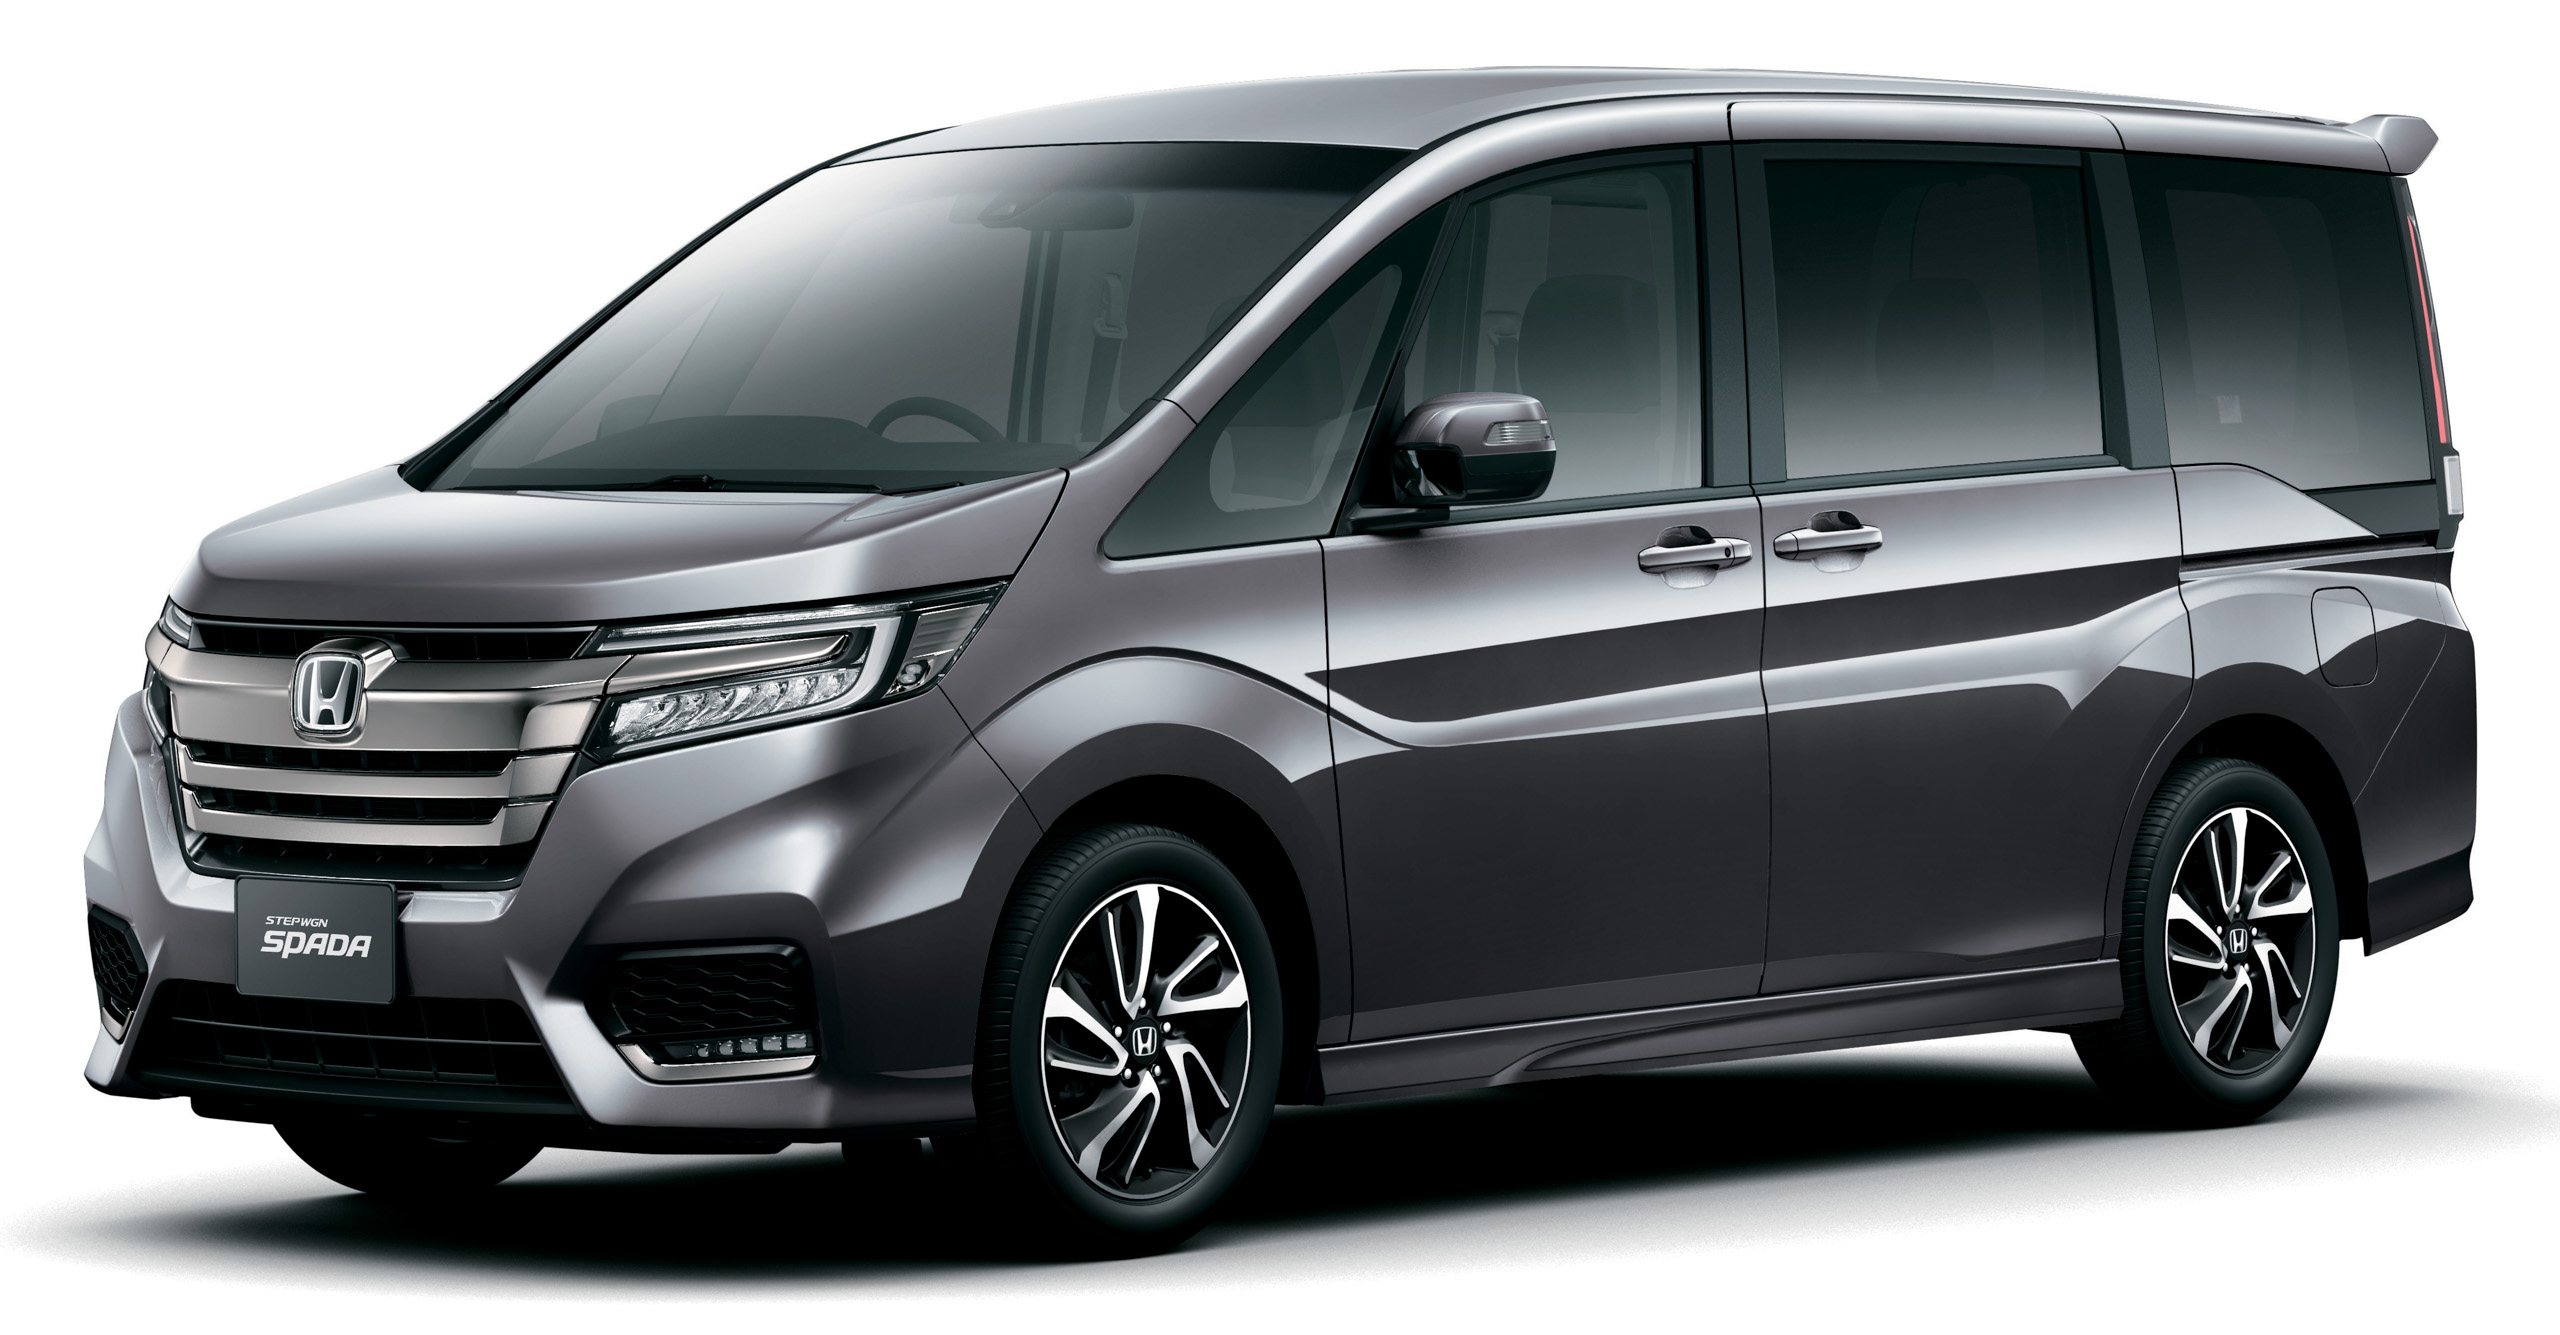 Honda Stepwgn Updated In Japan Sport Hybrid I Mmd